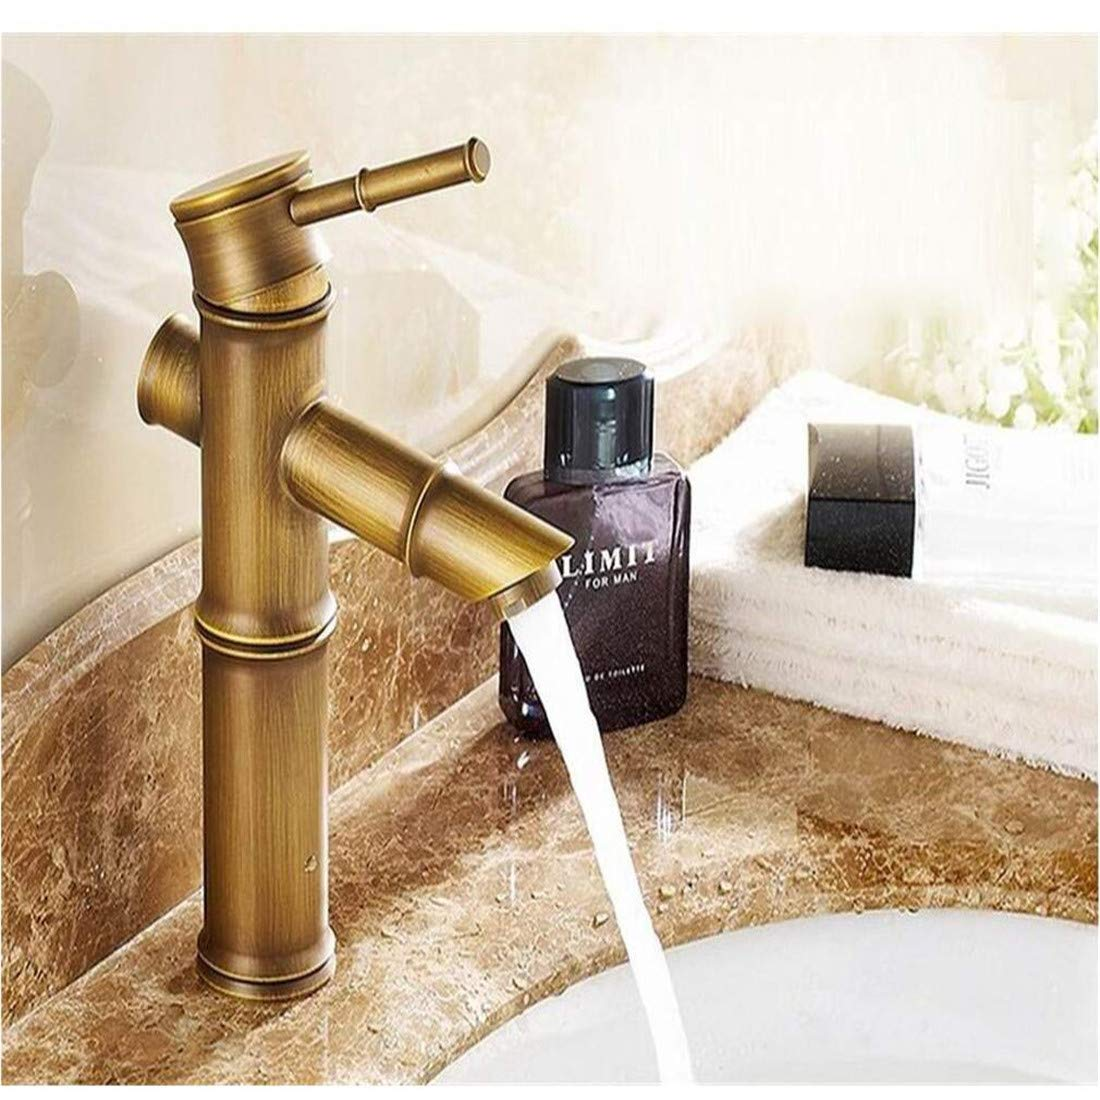 Vintage Faucet Mounted Single Handle Bamboo Style Bathroom Sink Mixer Faucet Bronze High Quality Popular